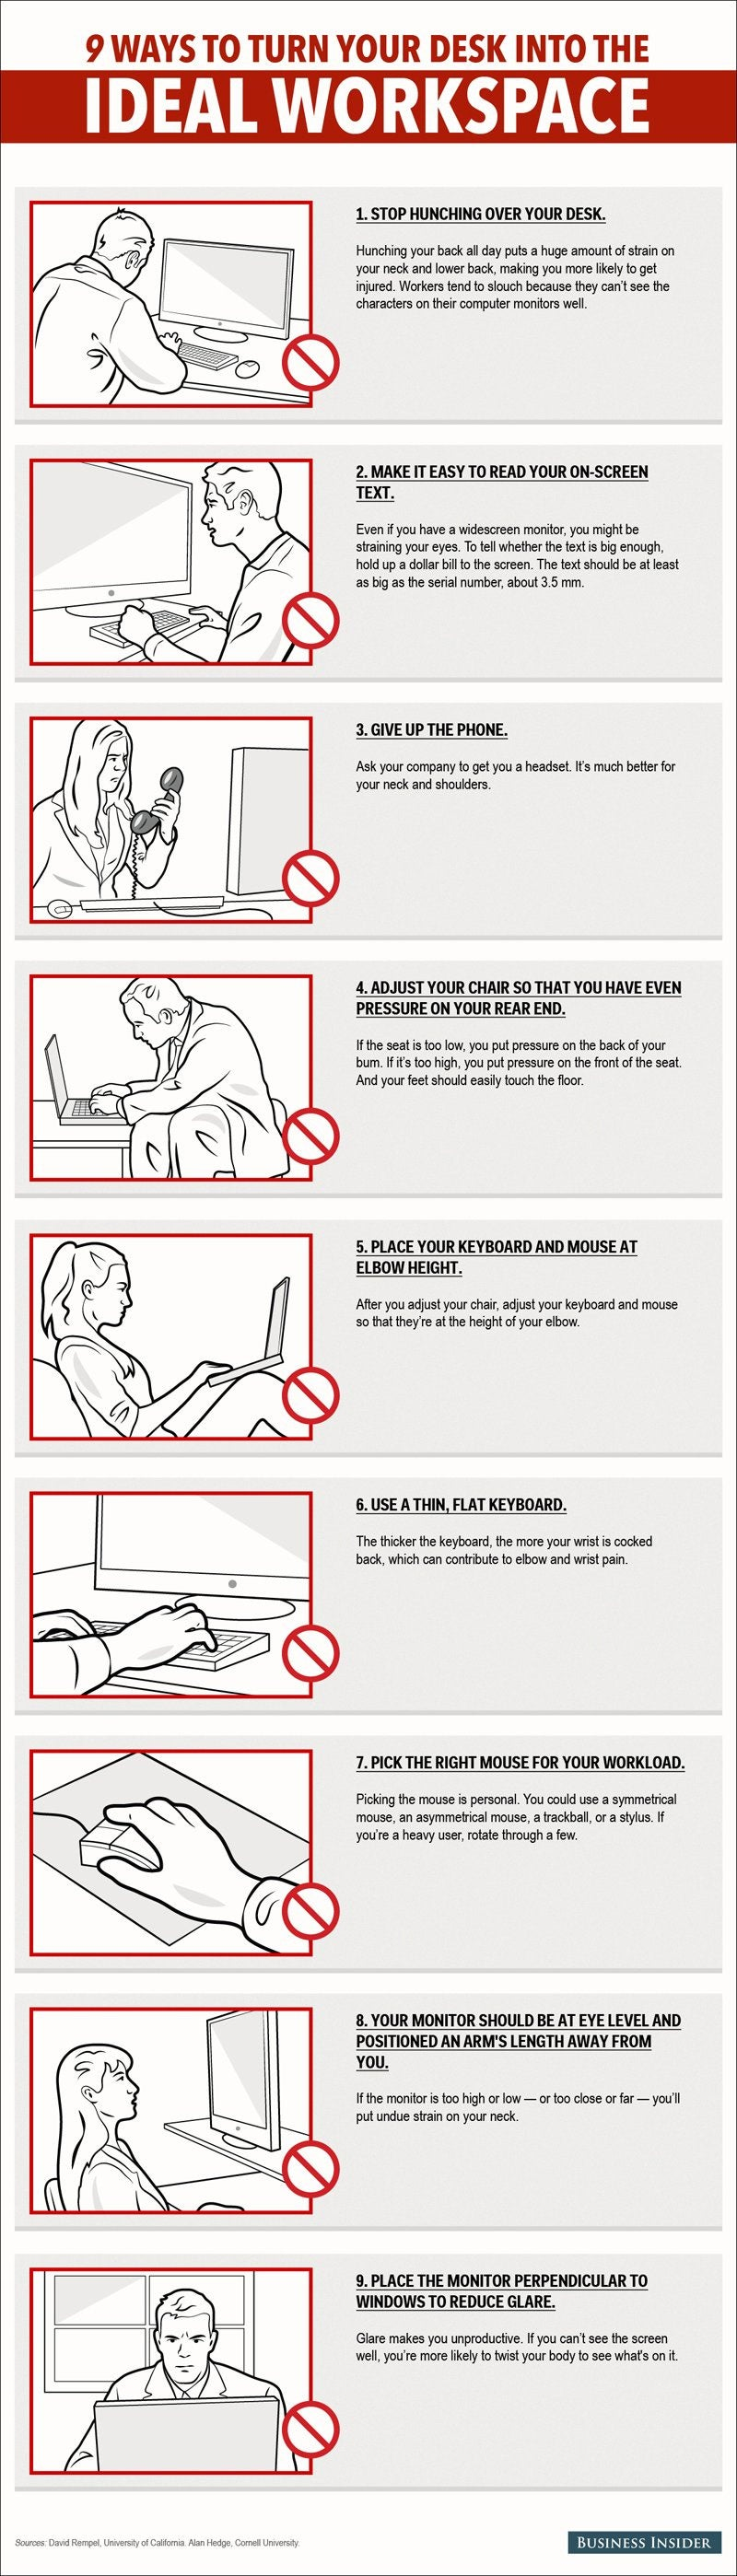 9 Ways to Turn Your Desk Into the Ideal Workspace (Infographic)